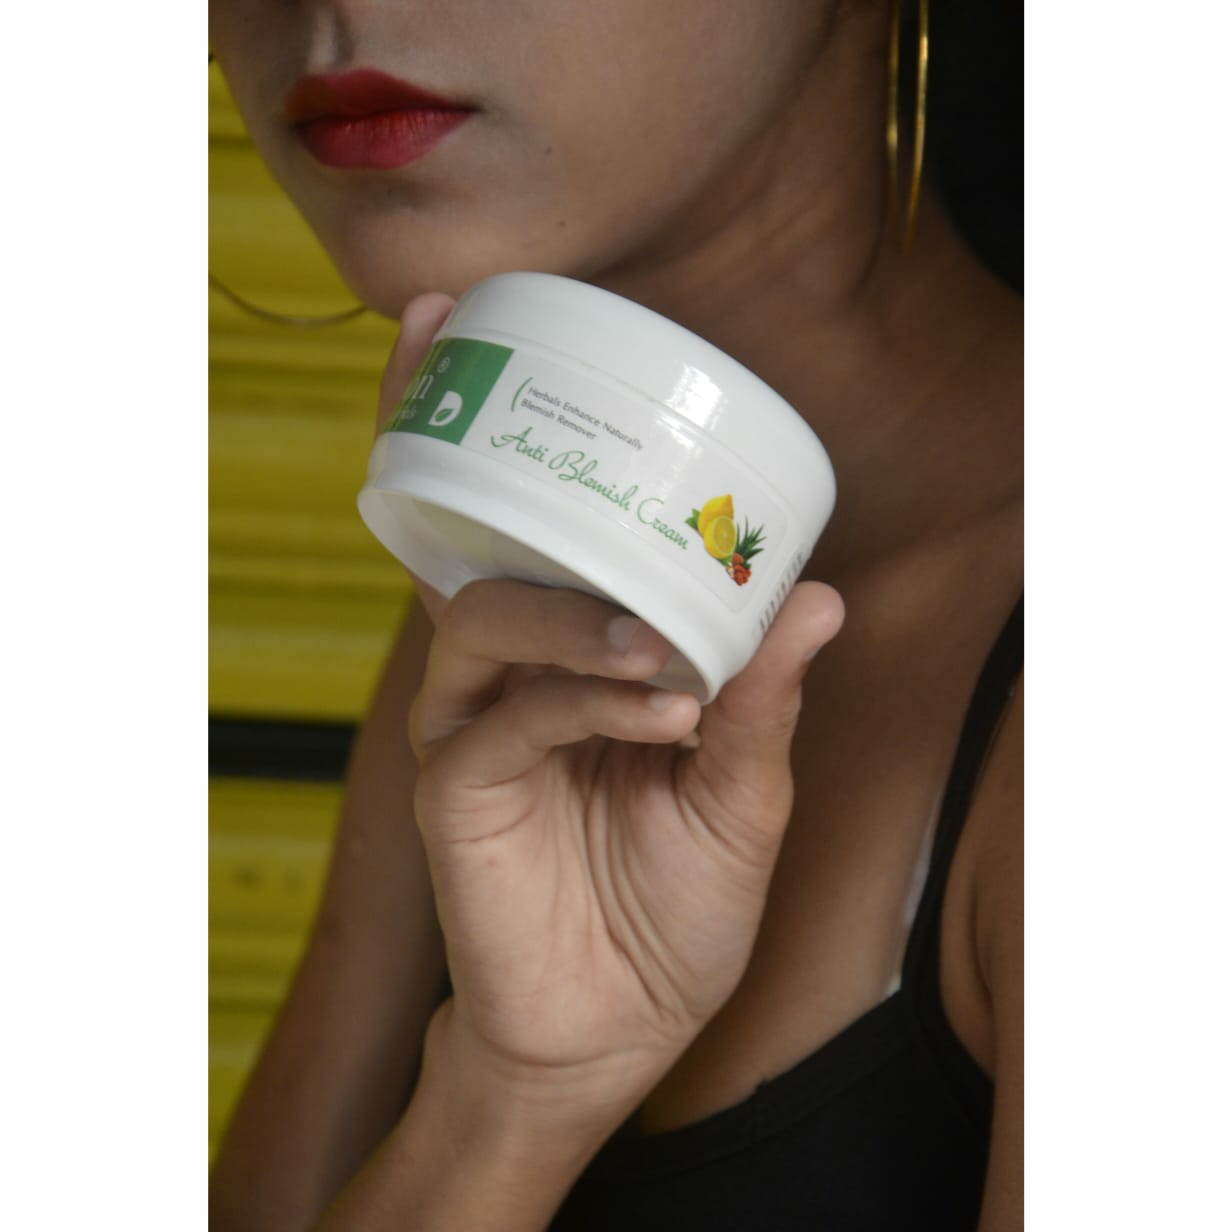 Thelookbook-Review for debon herbals Anti blemish cream.